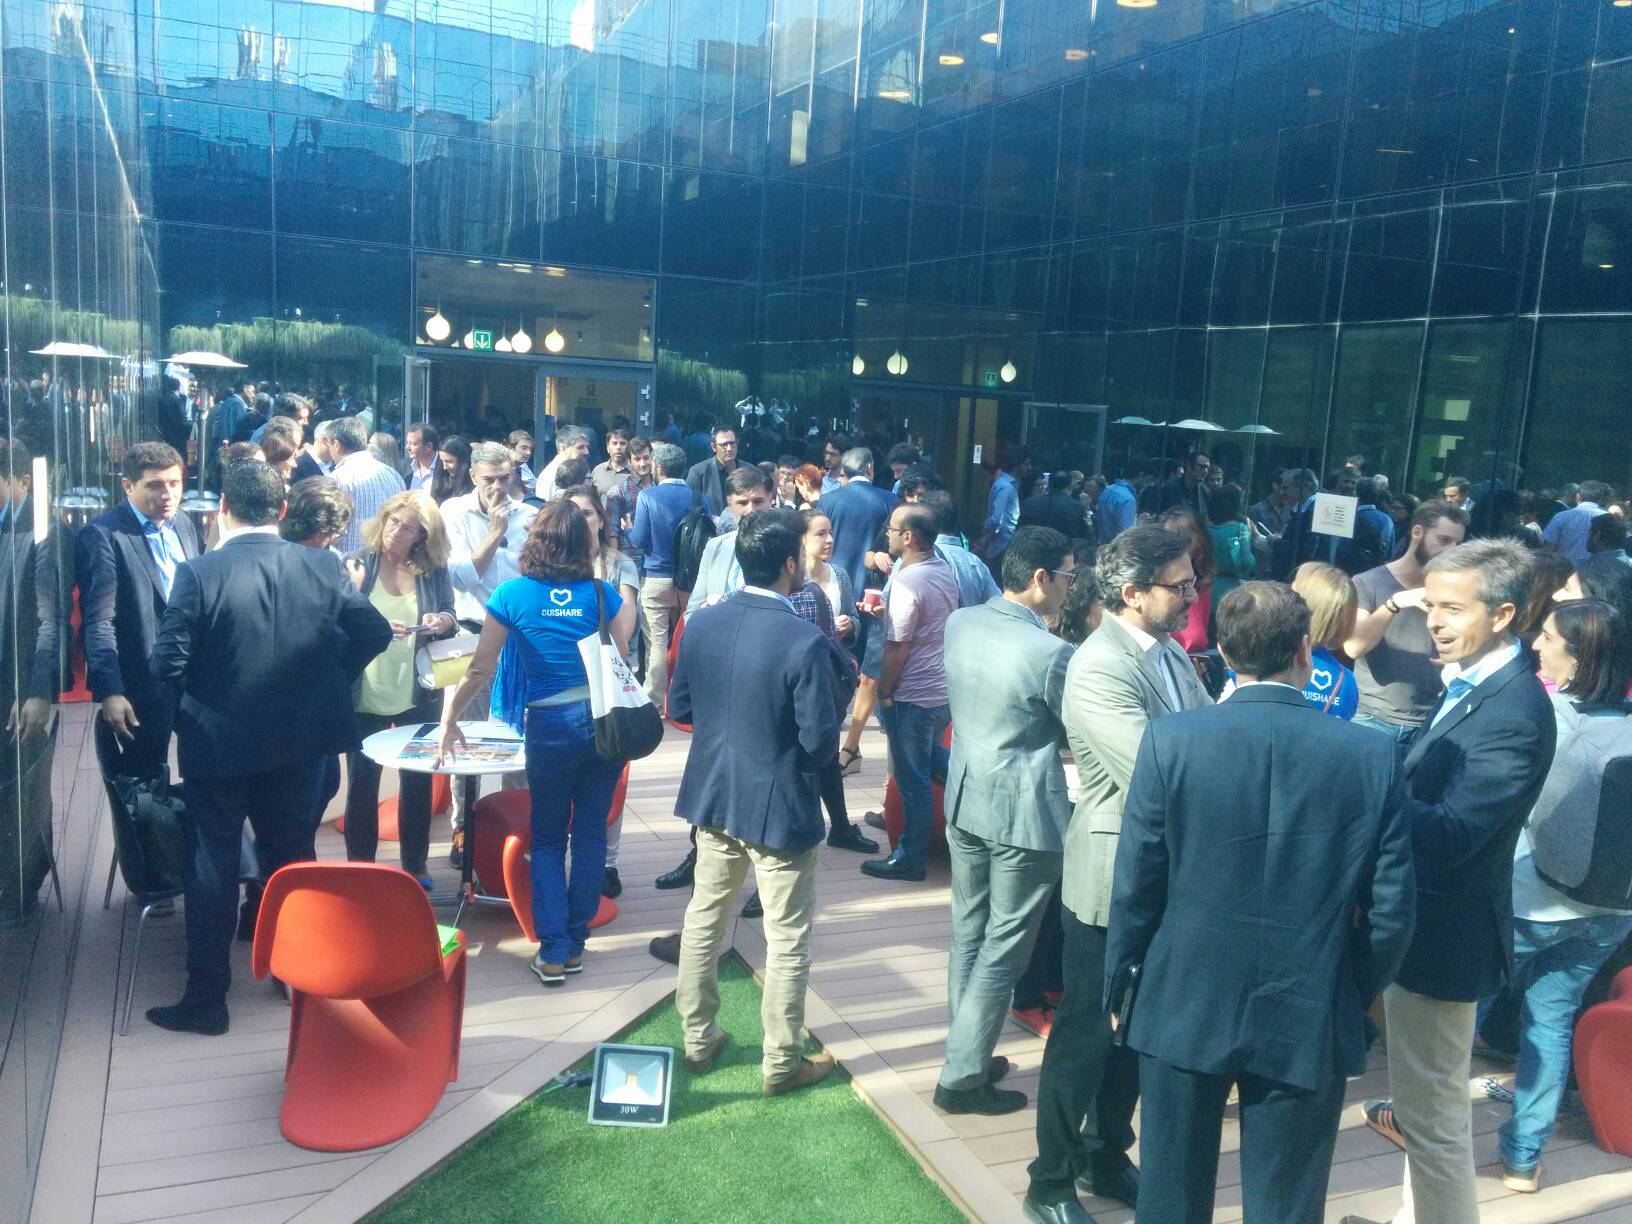 Full house en el networking de #osrethink en #madrid @OuiShare_es #economiacolaborativa https://t.co/GMUQo5oIBU